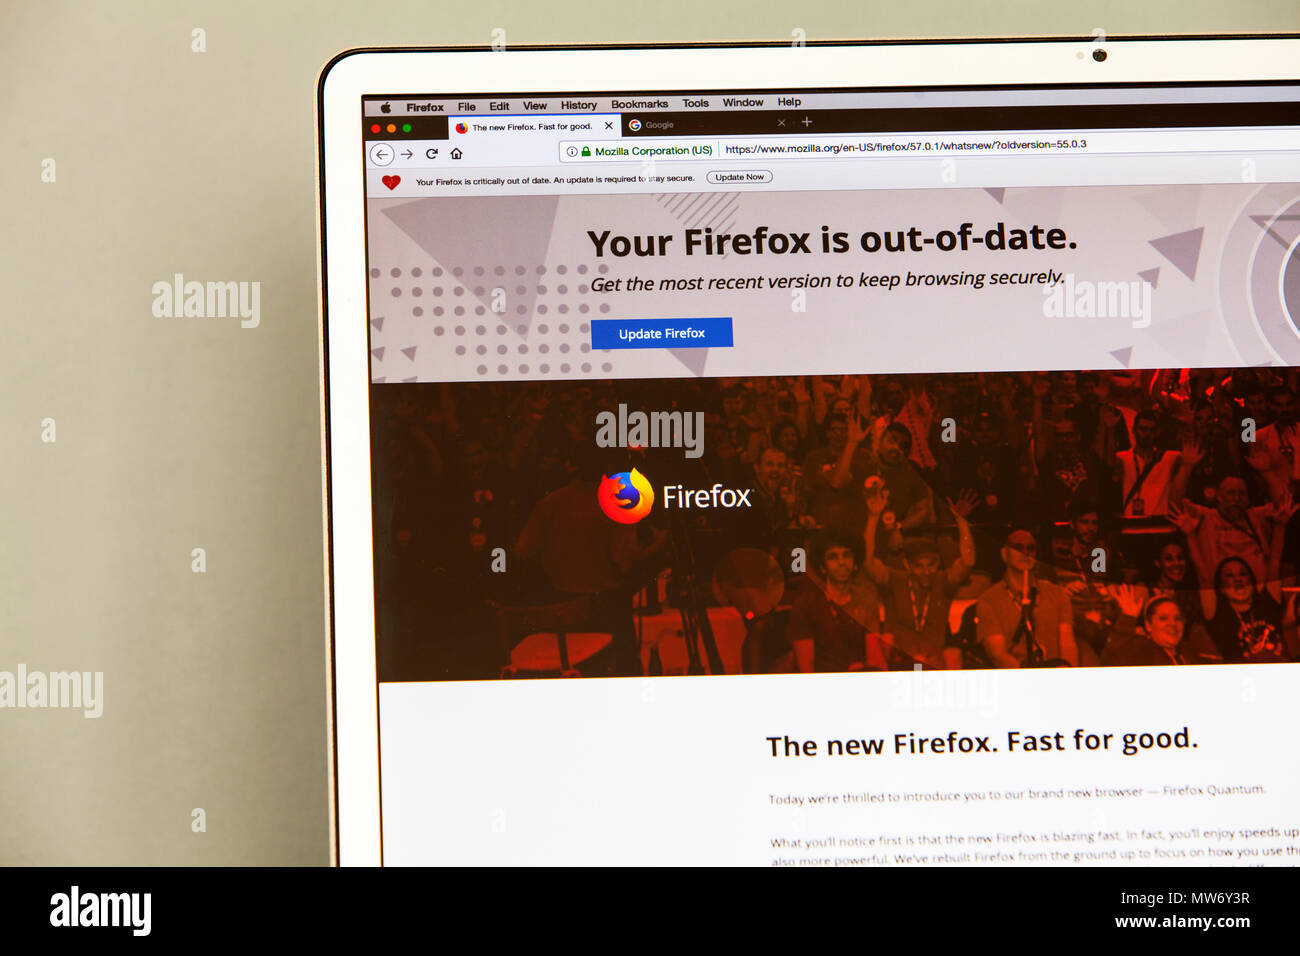 Firefox, Firefox website, Mozilla Firefox, Web page, website